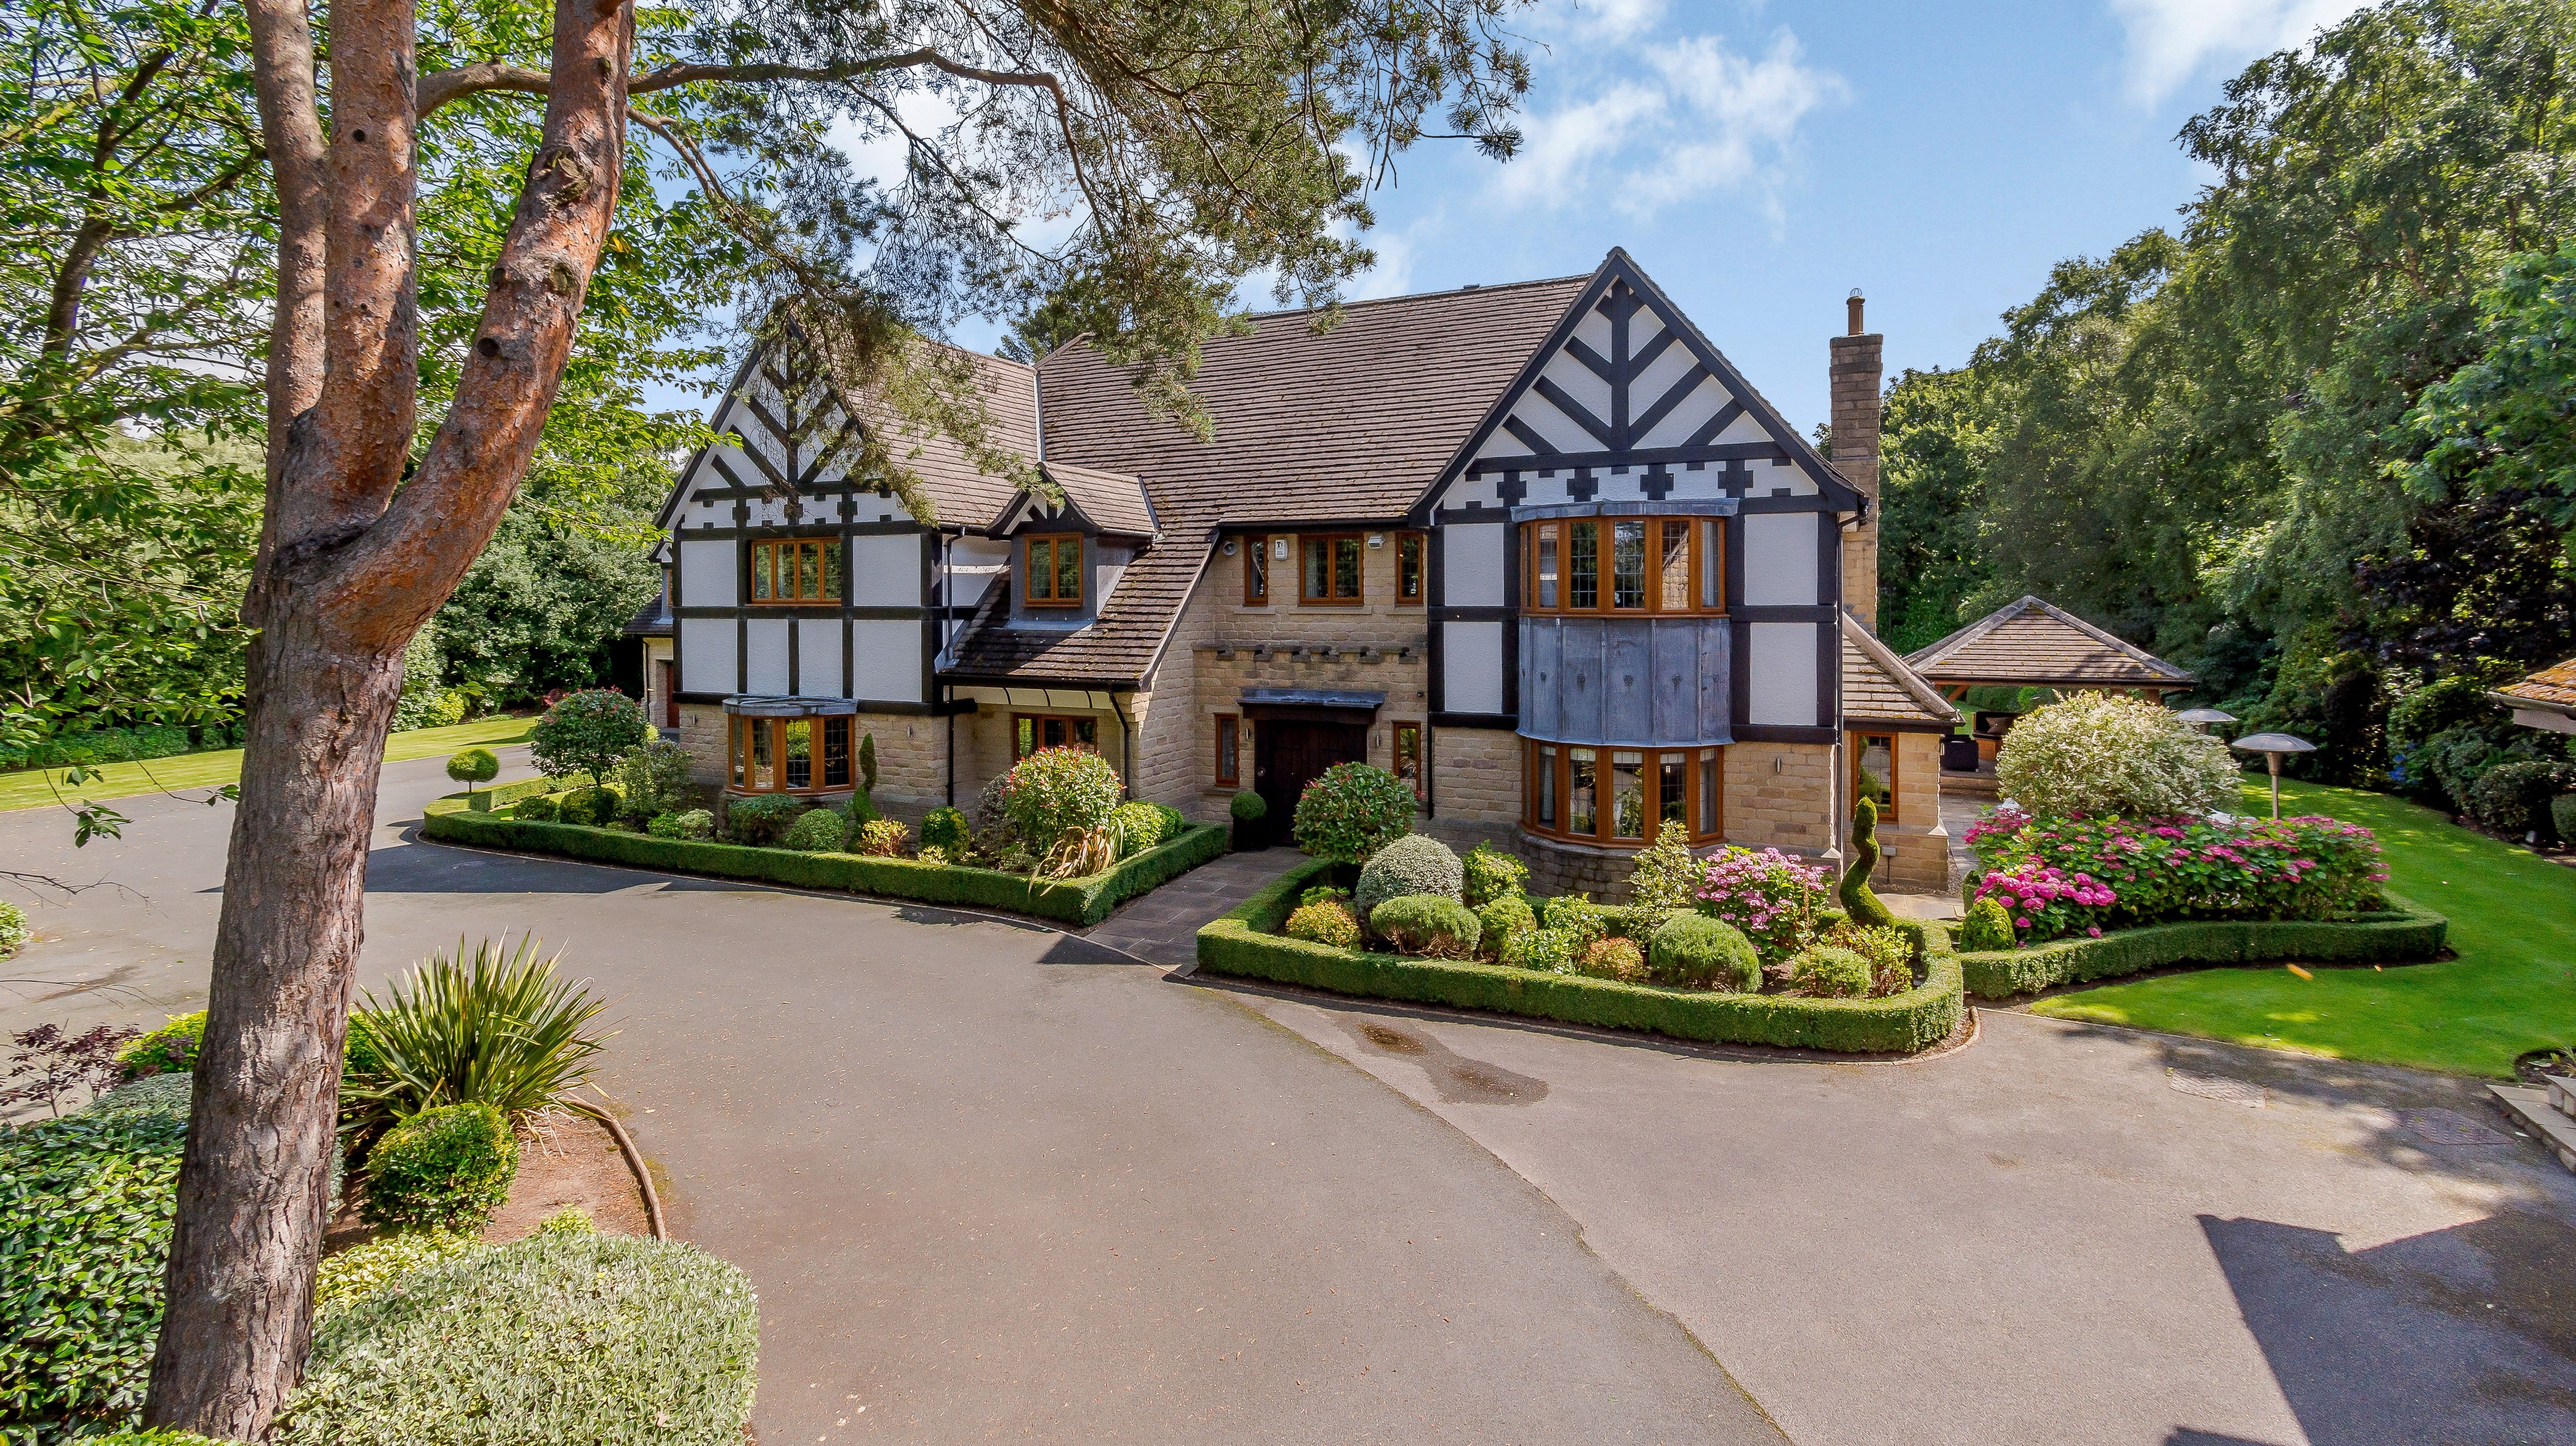 Mostviewed homes on Rightmove in pictures Detached